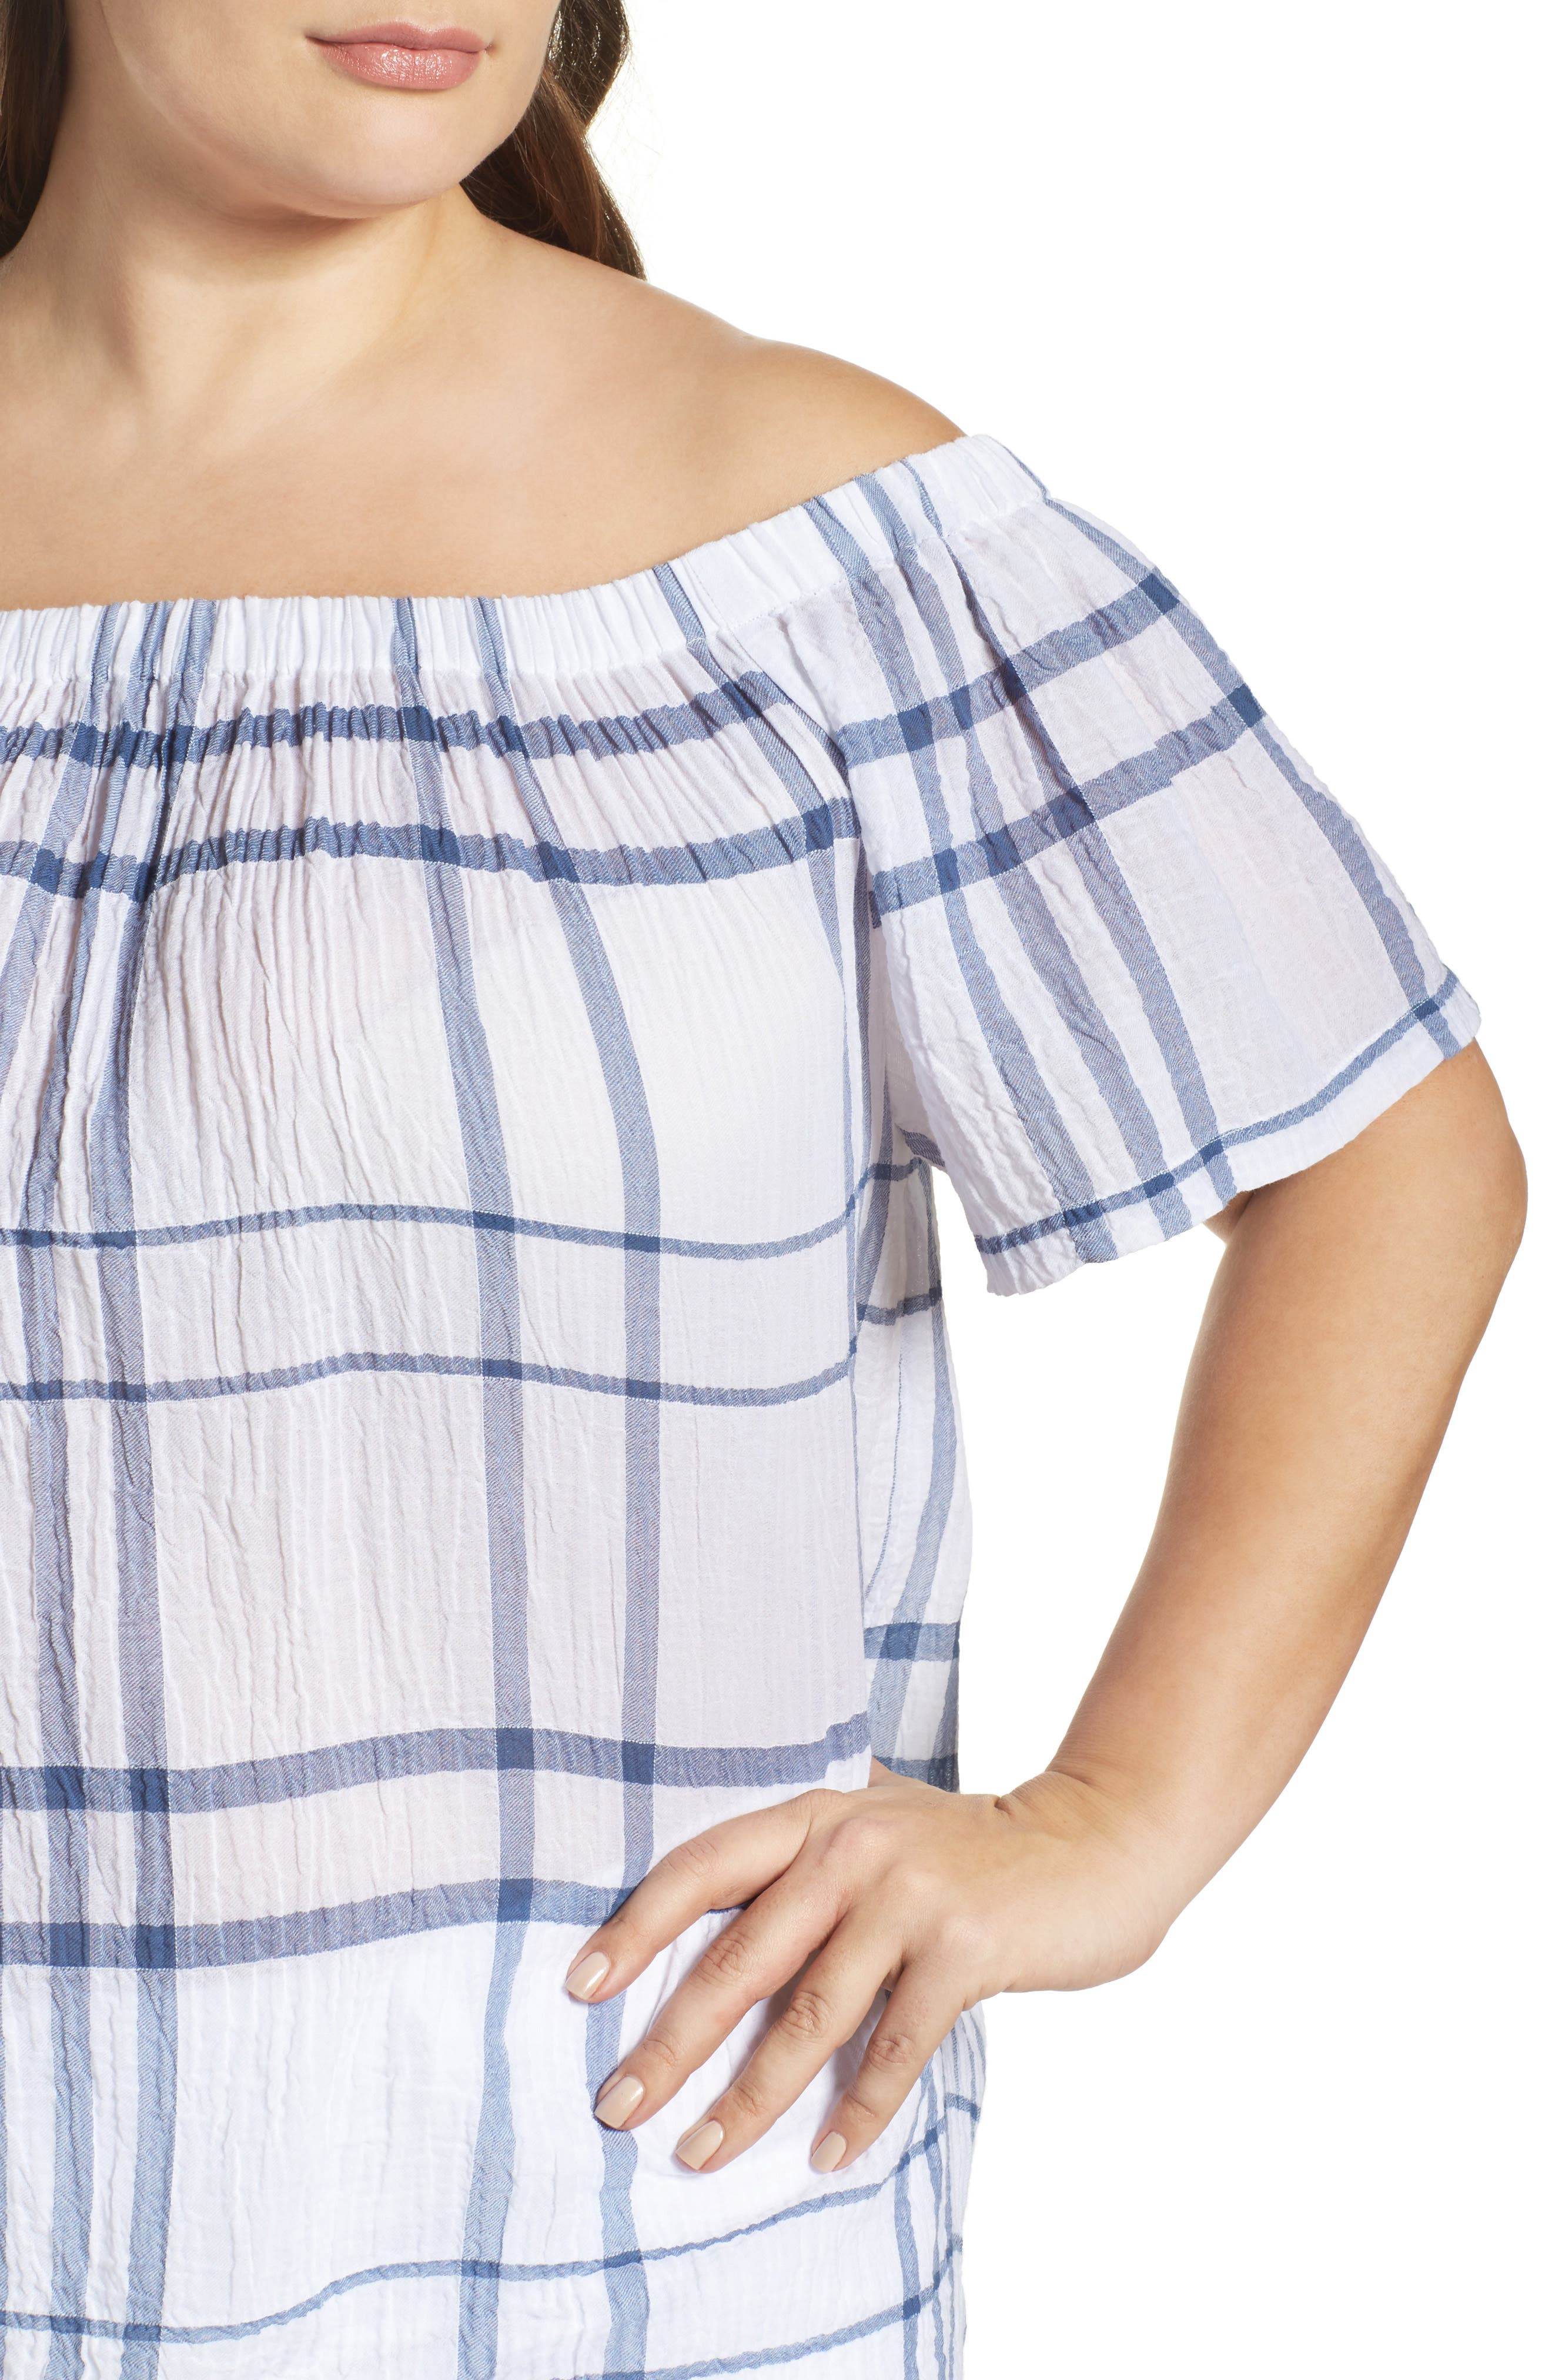 Vince Camuto Timeless Plaid Off the Shoulder Blouse,                             Alternate thumbnail 4, color,                             400